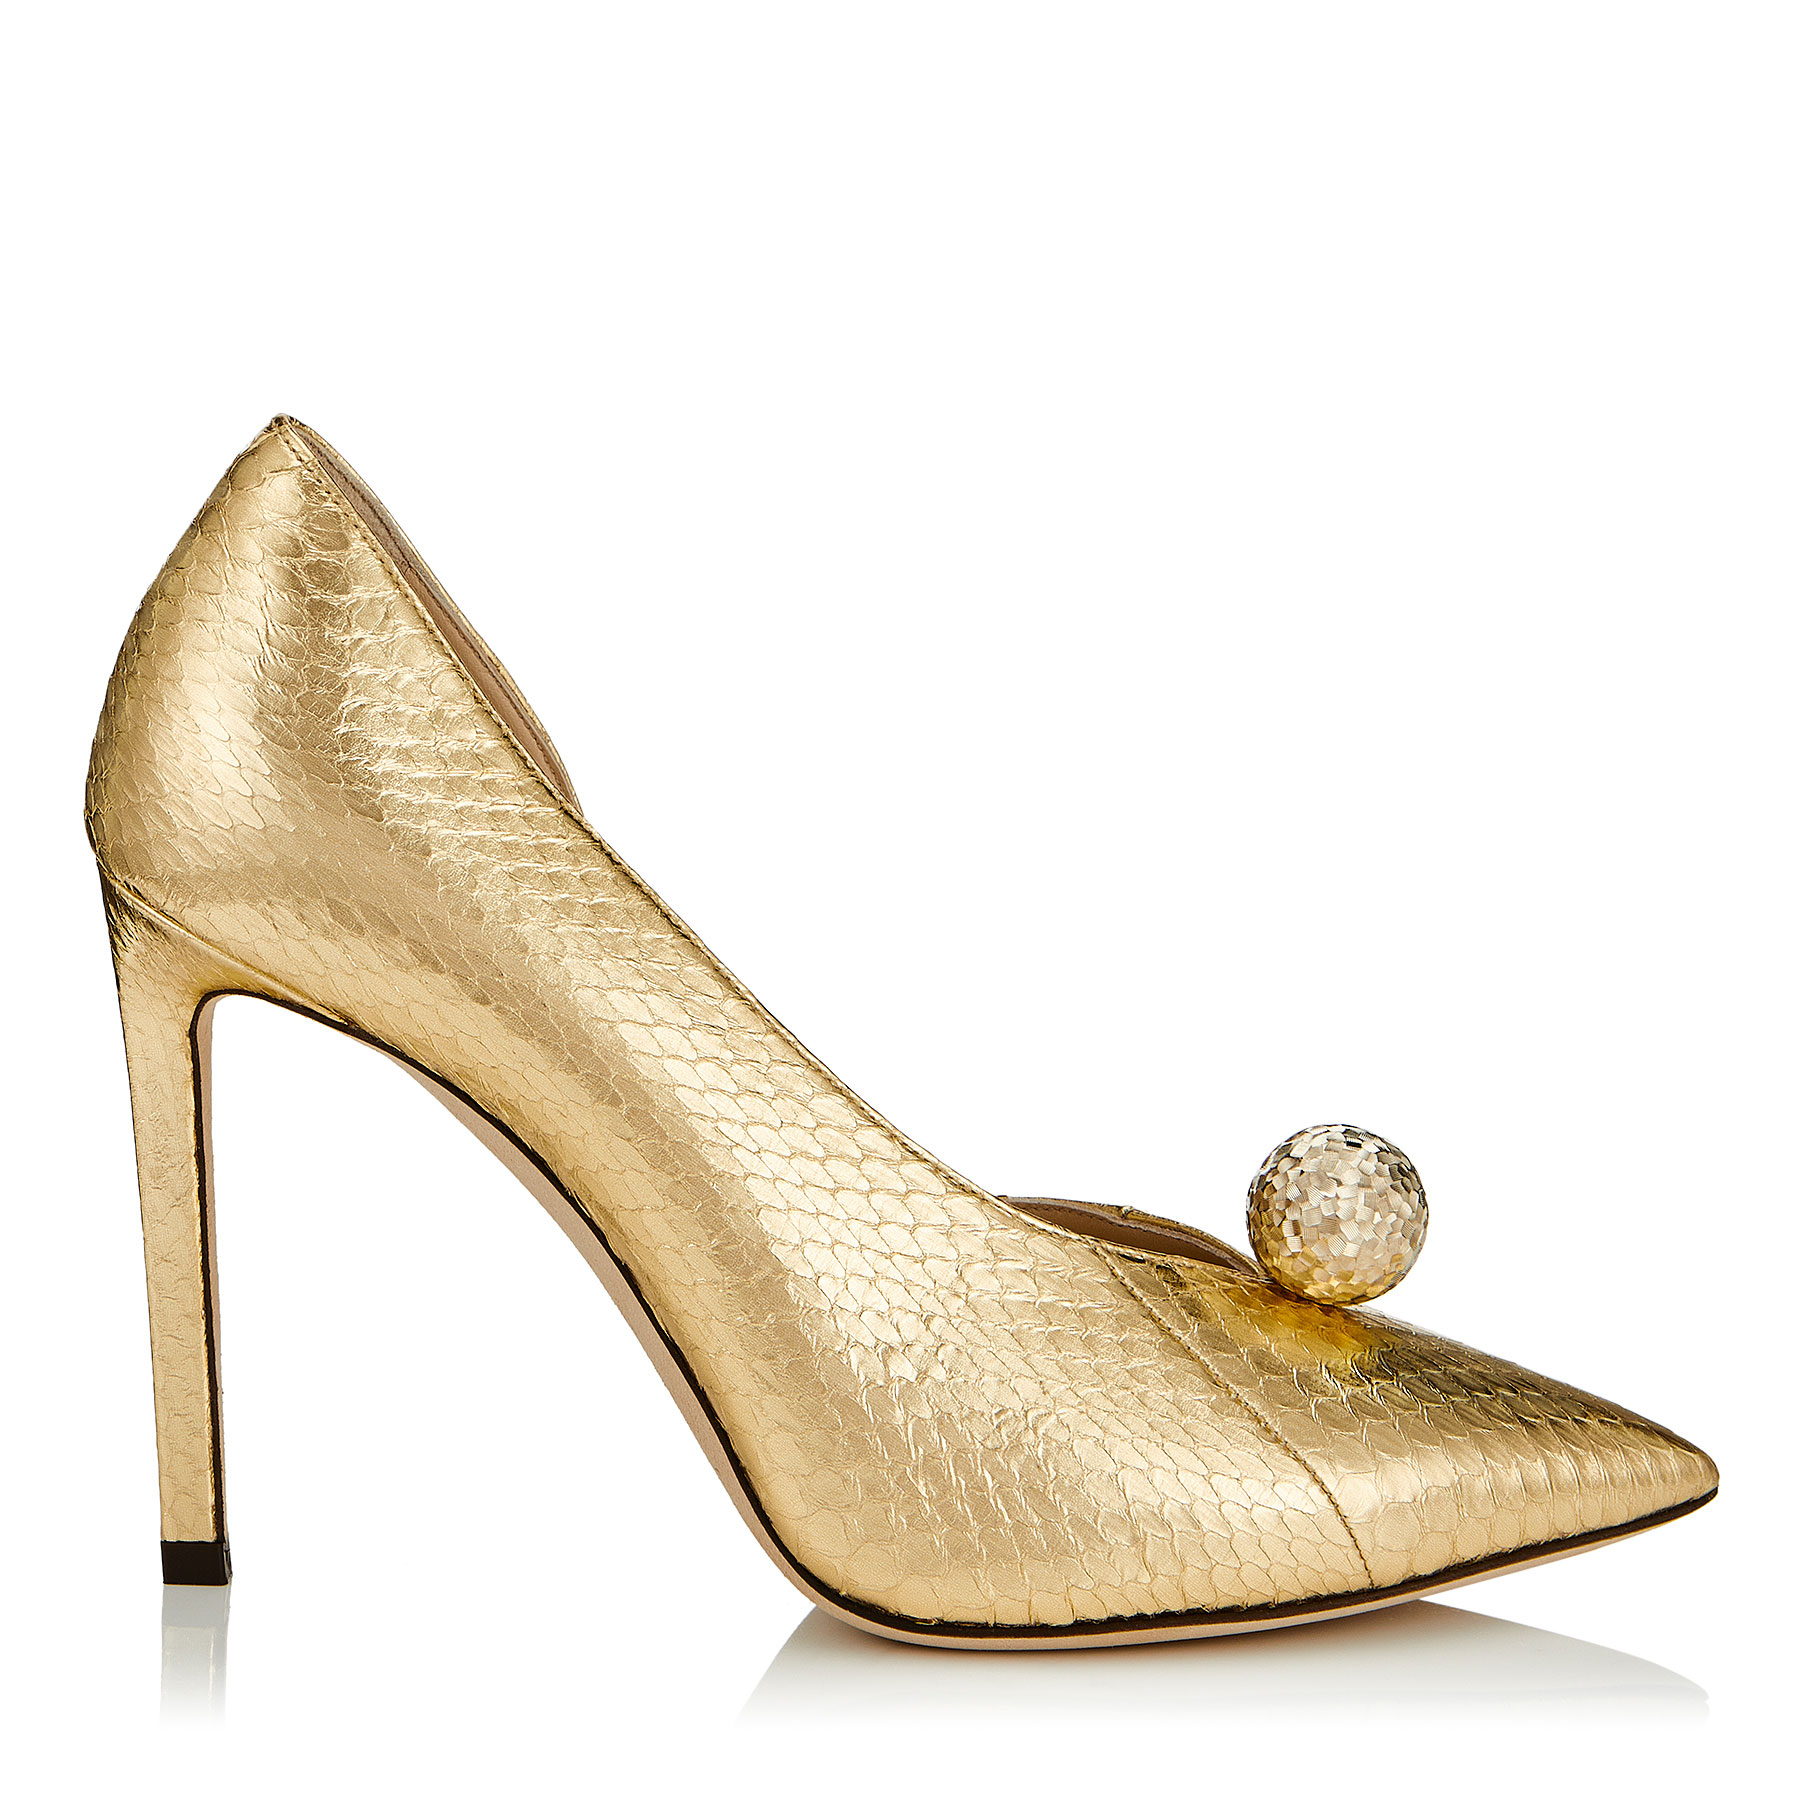 SADIRA 100 Gold Metallic Elaphe Pointy Toe Pumps with Diamond Cut Pearl by Jimmy Choo